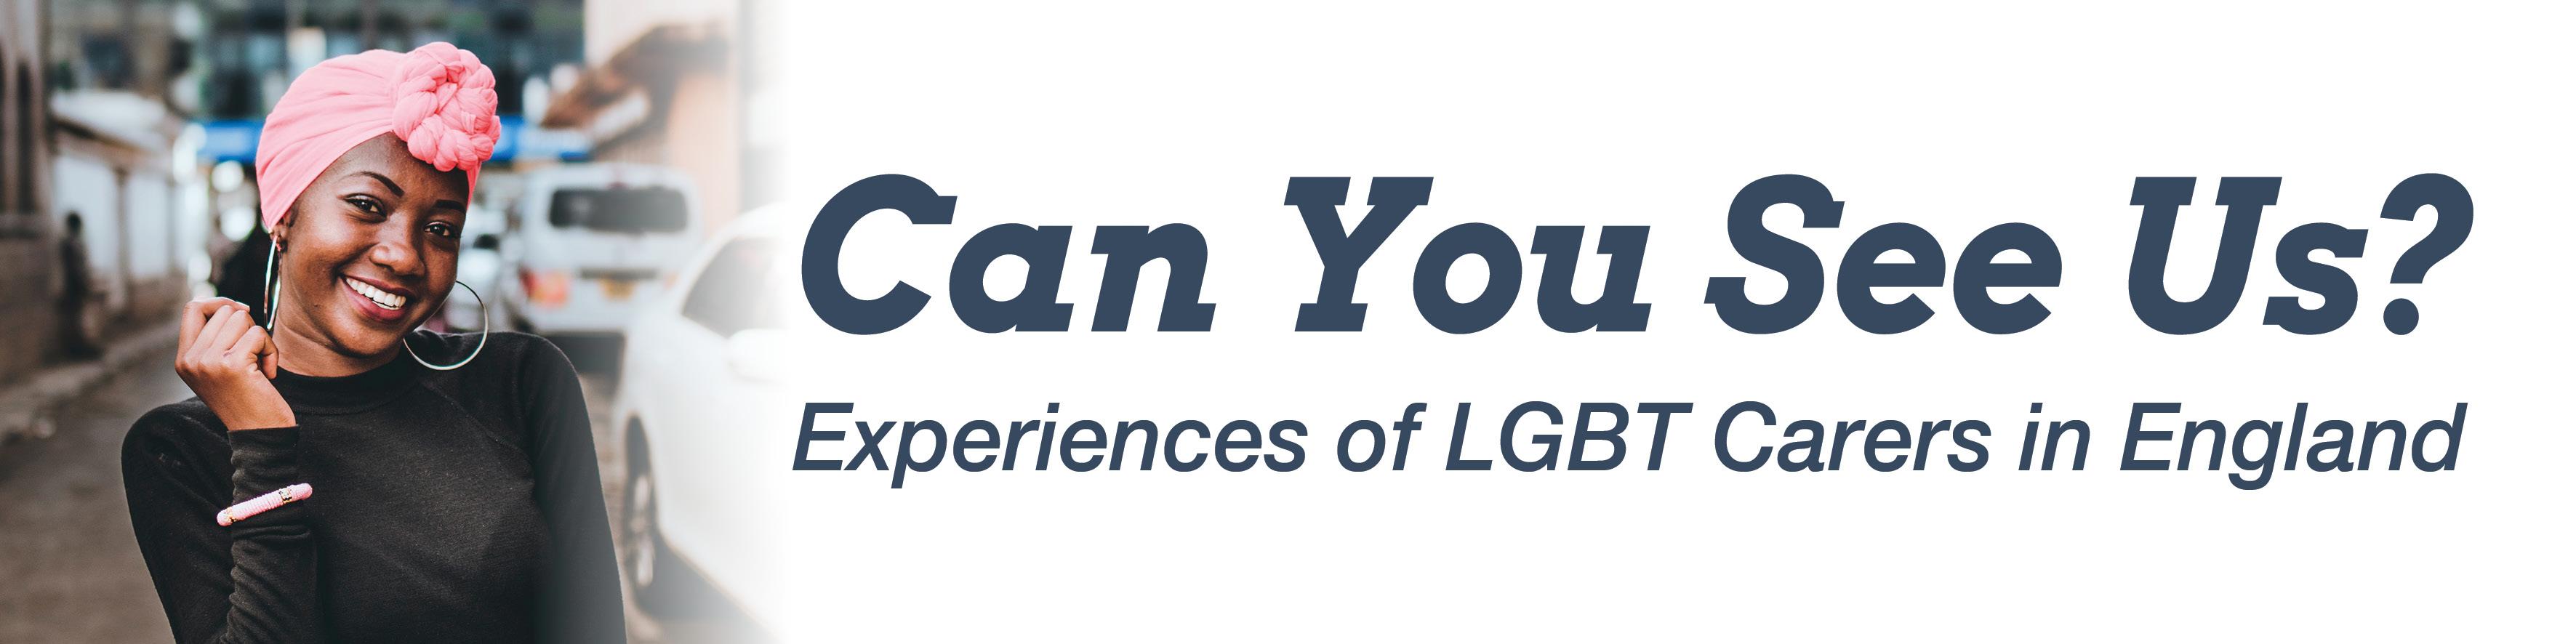 Can You See Us? - Experiences of LGBT Carers in England